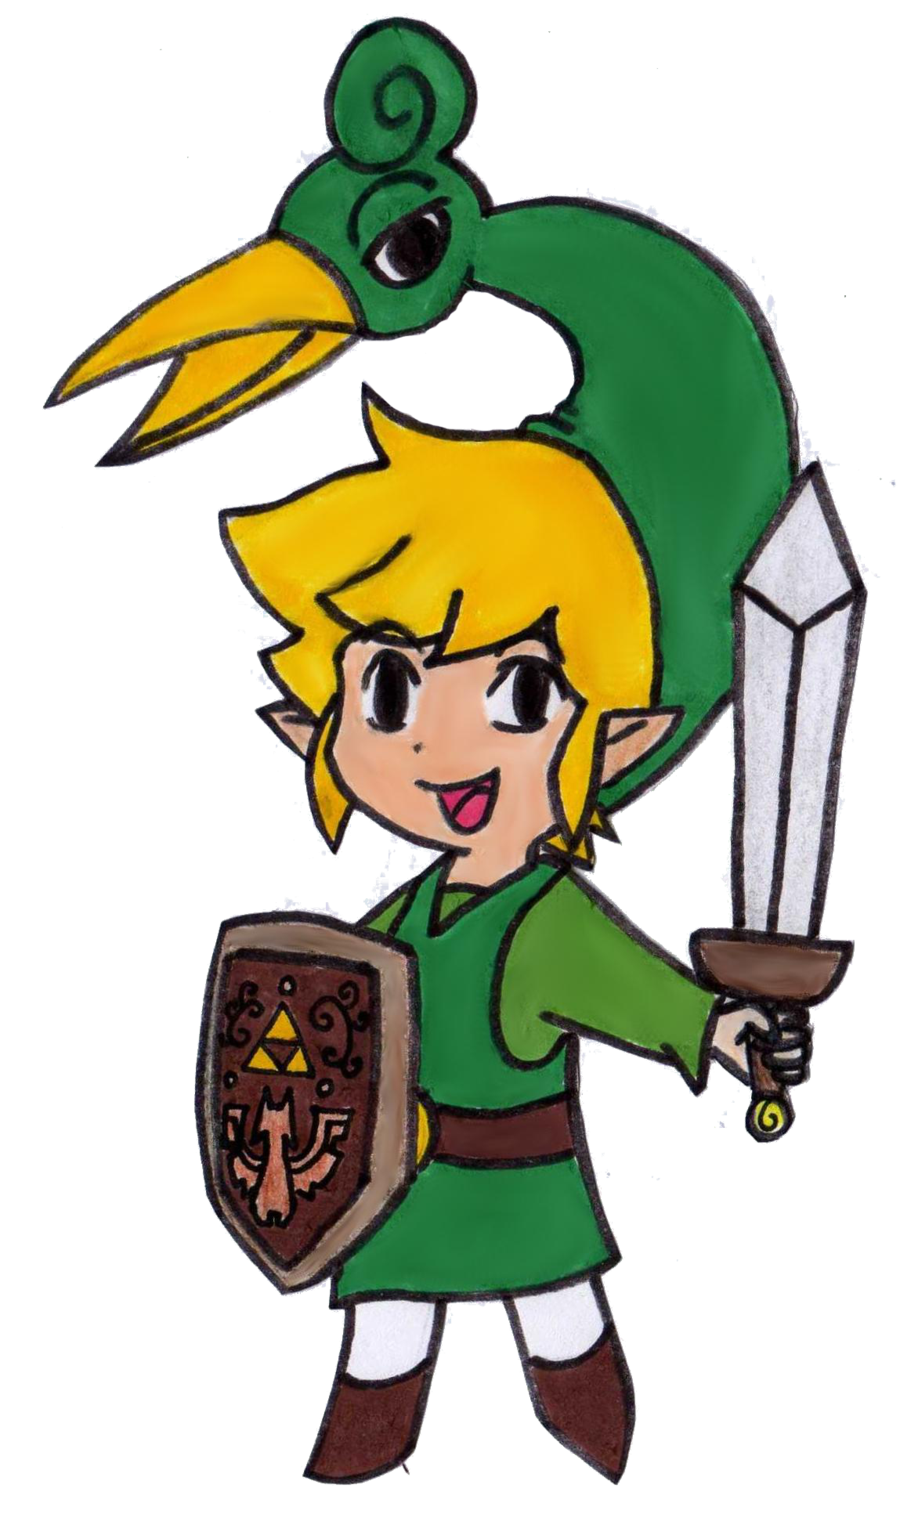 Chibi Link The Minish Cap By Easteregg23 On Deviantart The Minish Cap Chibi Link Cosplay